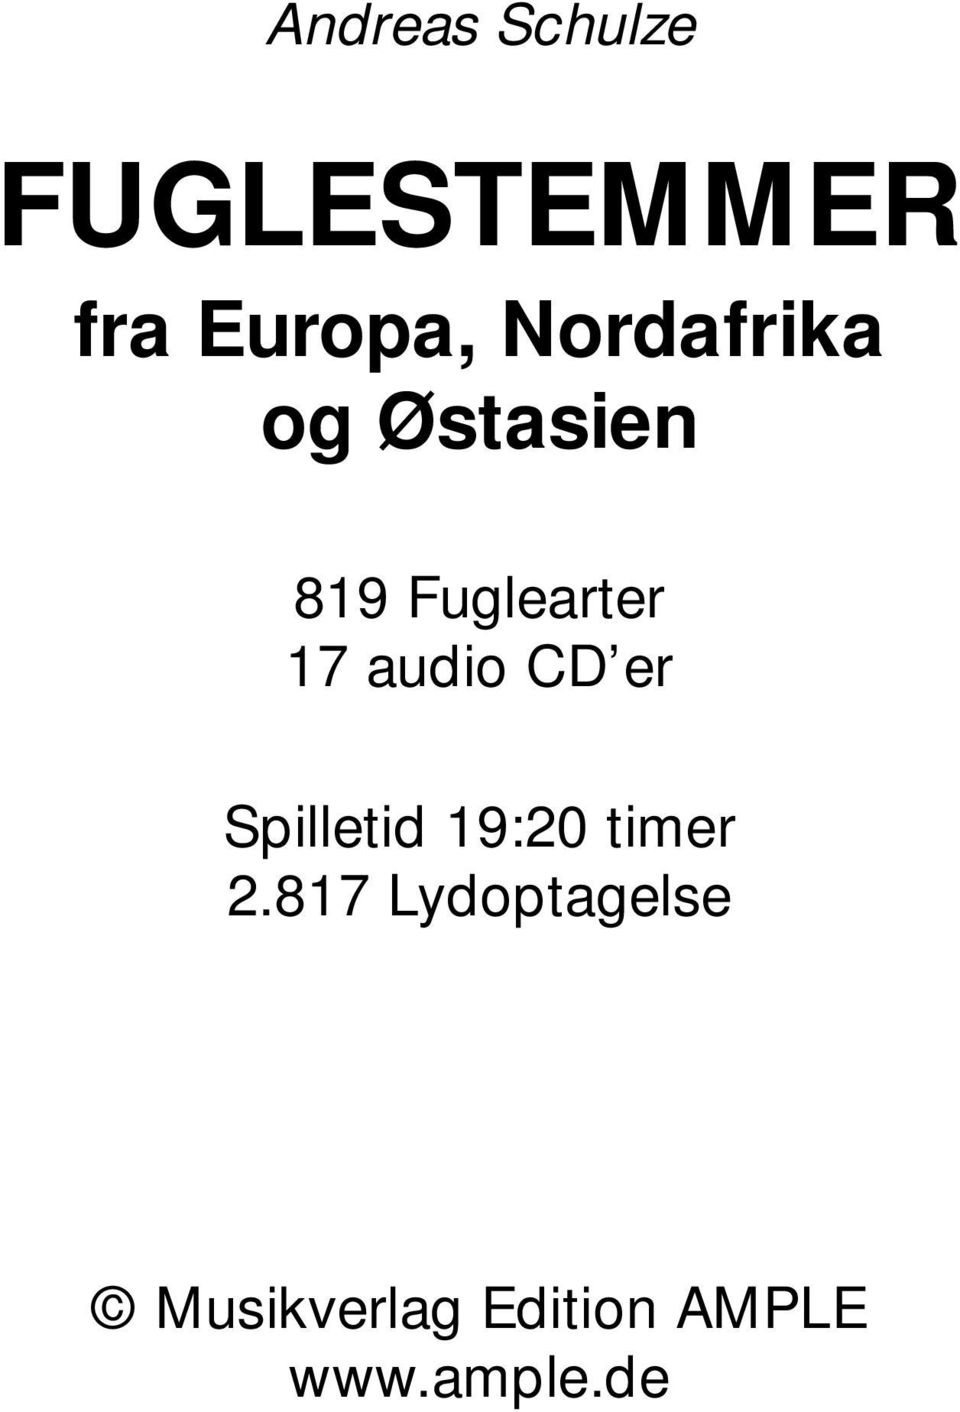 audio CD er Spilletid 19:20 timer 2.